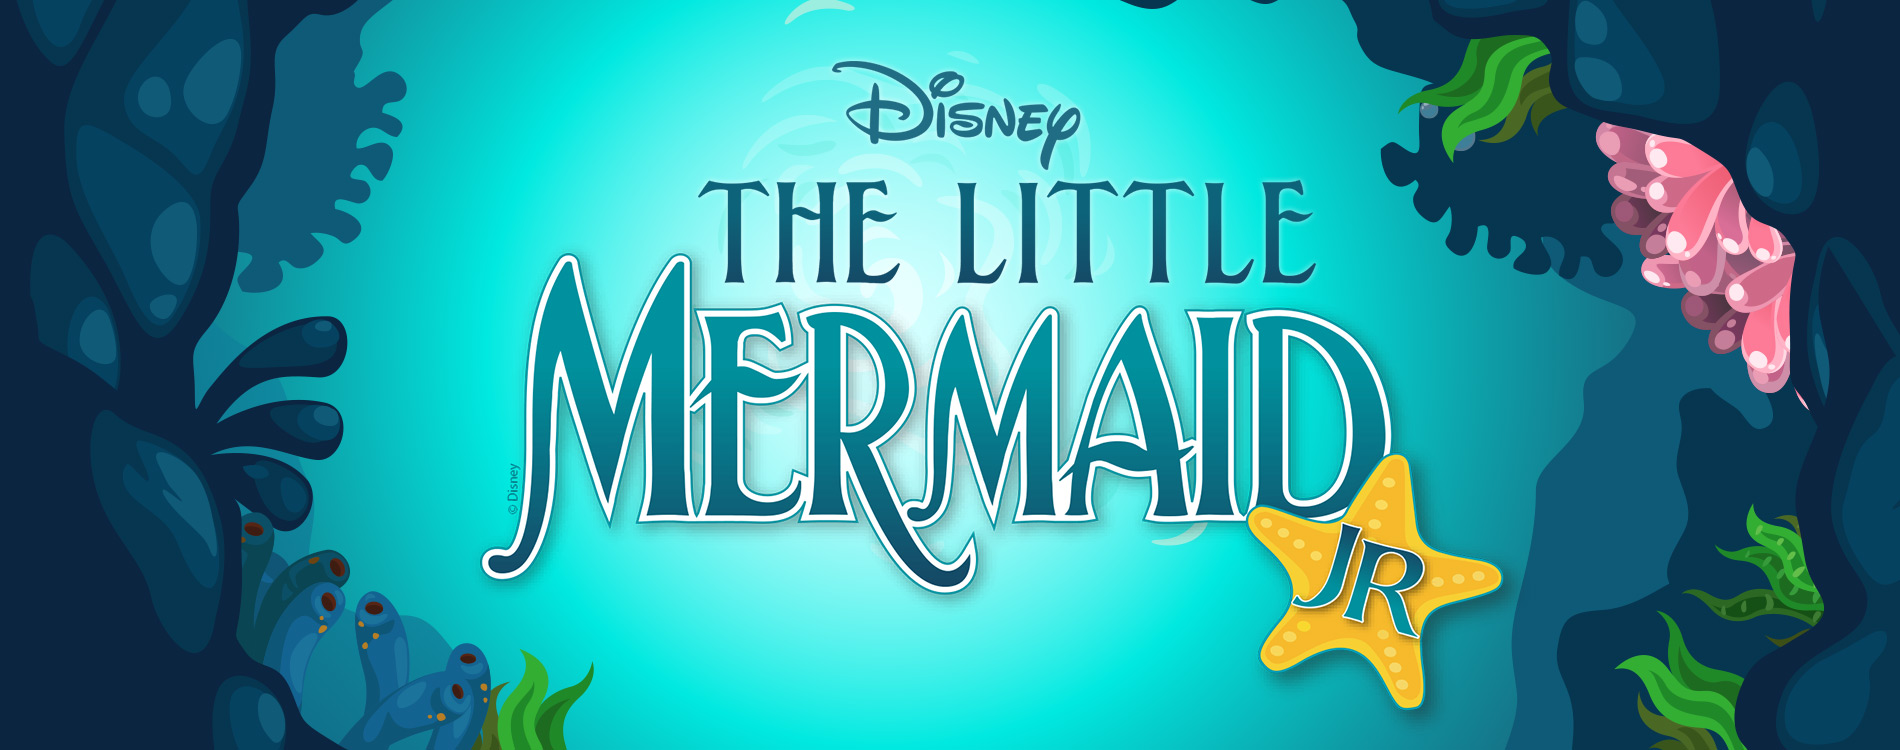 Disney's Little Mermaid Jr